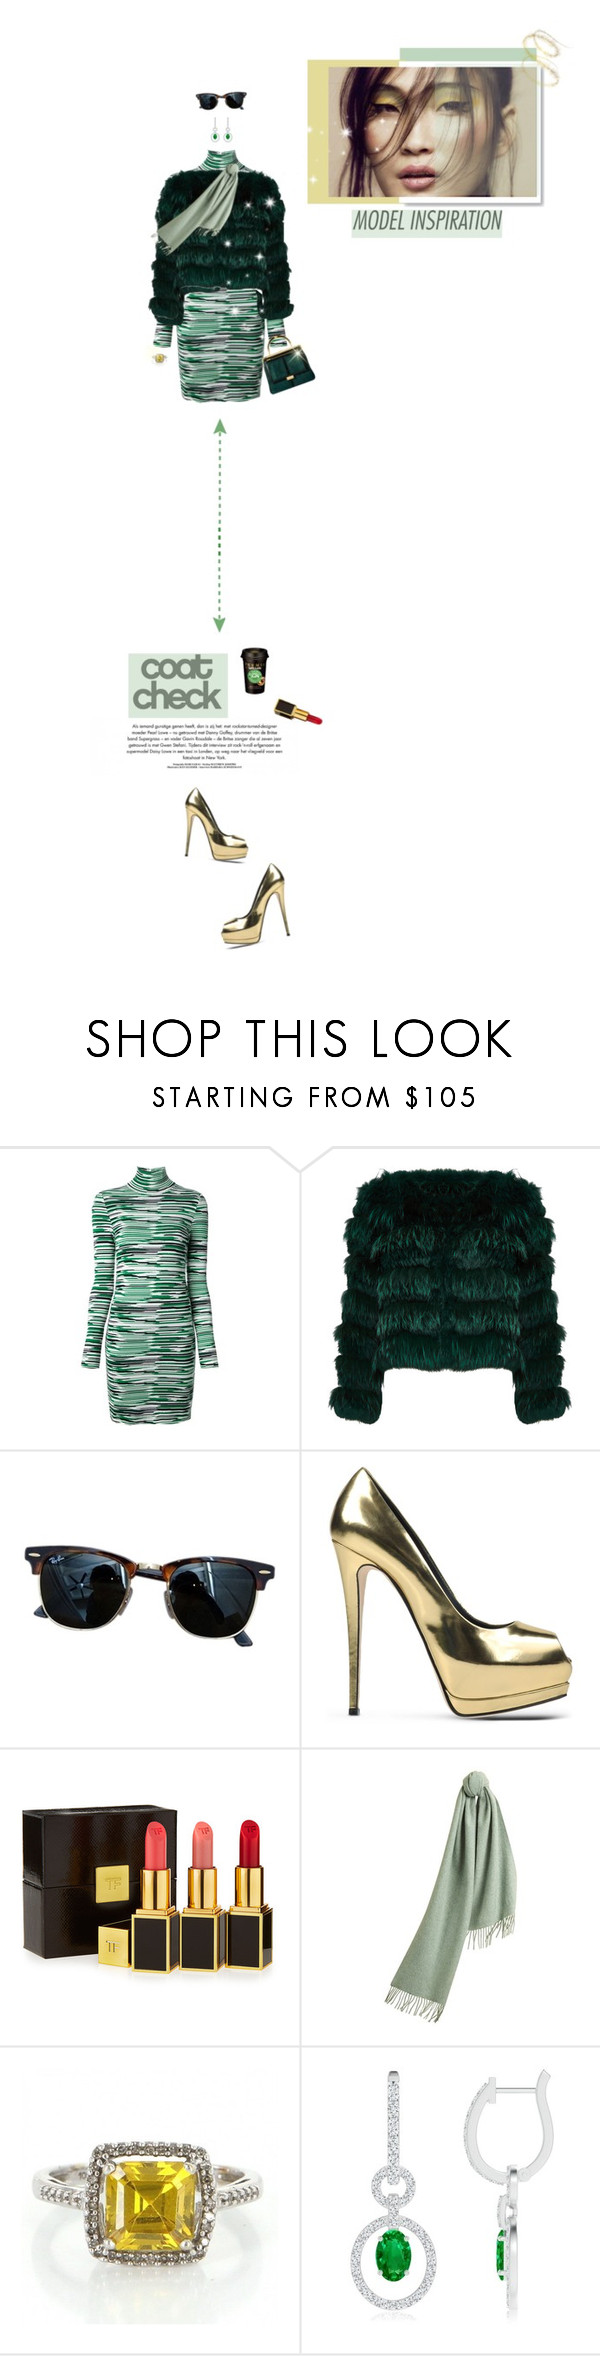 """""""Merry Christmas:Rockin the Green & Gold! ♥"""" by prettynposh2 ❤ liked on Polyvore featuring STELLA McCARTNEY, Alice + Olivia, Balmain, Ray-Ban, Caffé, Giuseppe Zanotti, Tom Ford, Burberry, GREEN and aliceandolivia"""